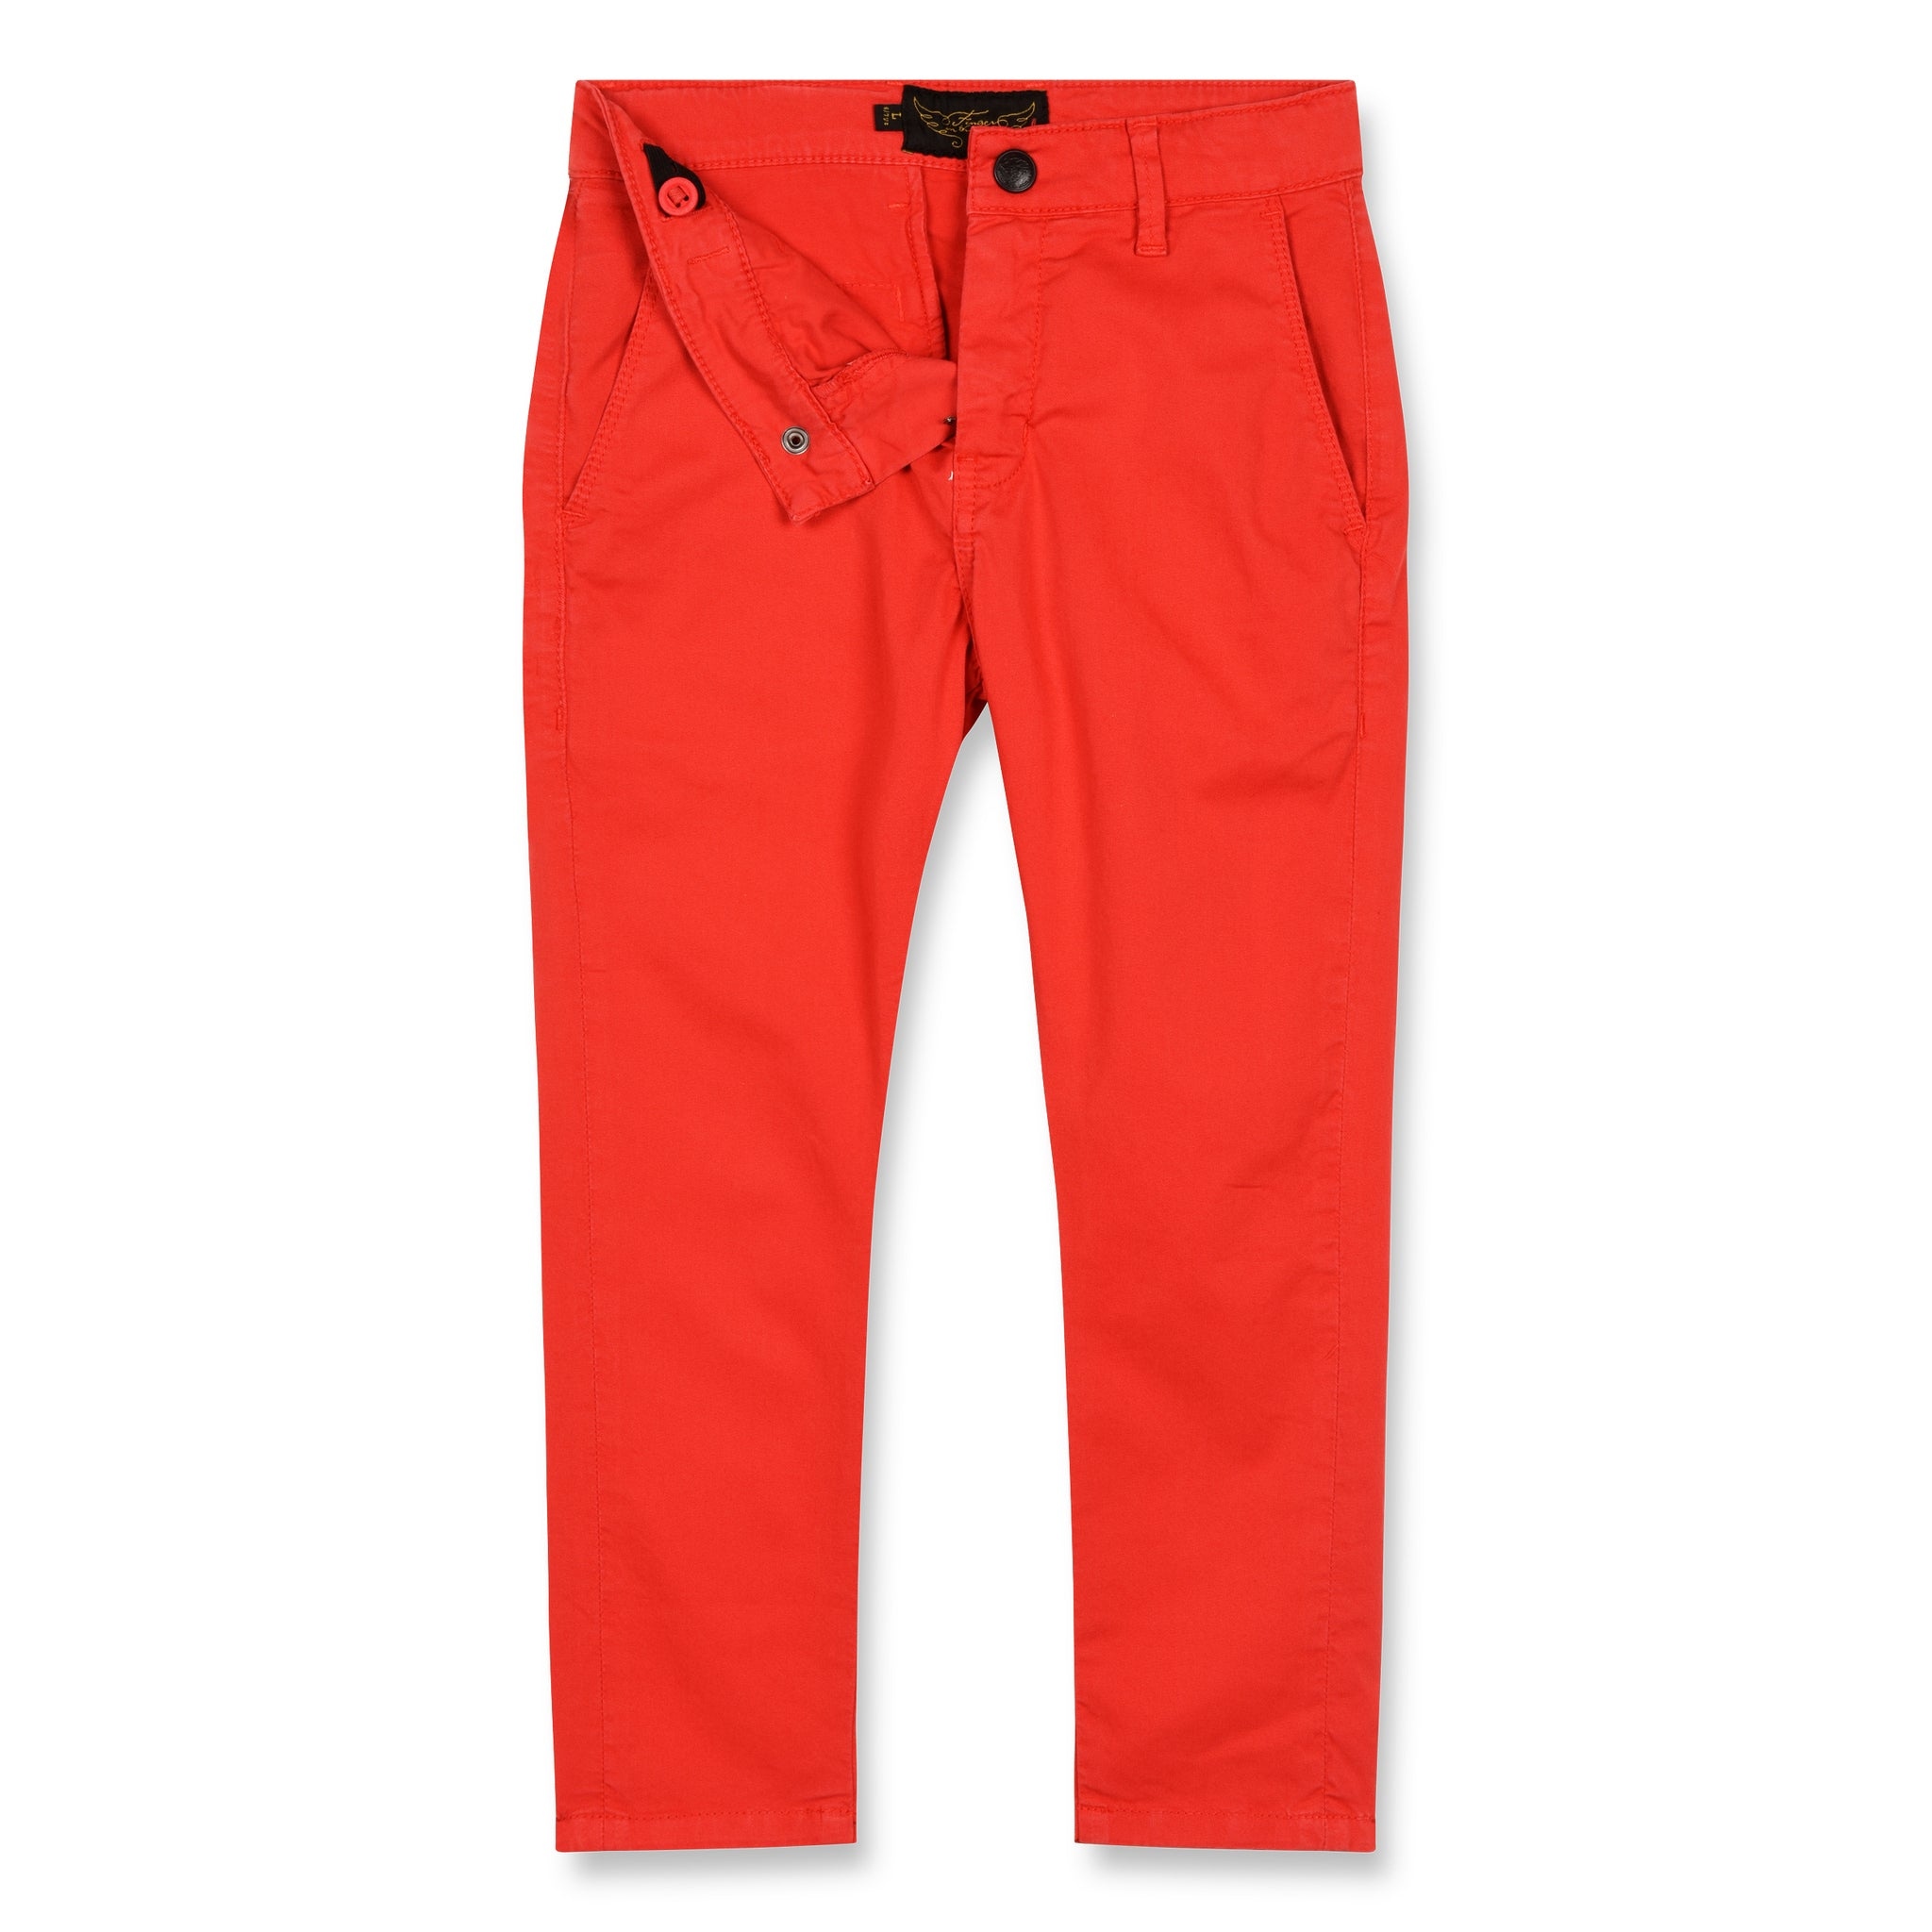 SCOTTY Poppy Red - Chino Fit Pants 2